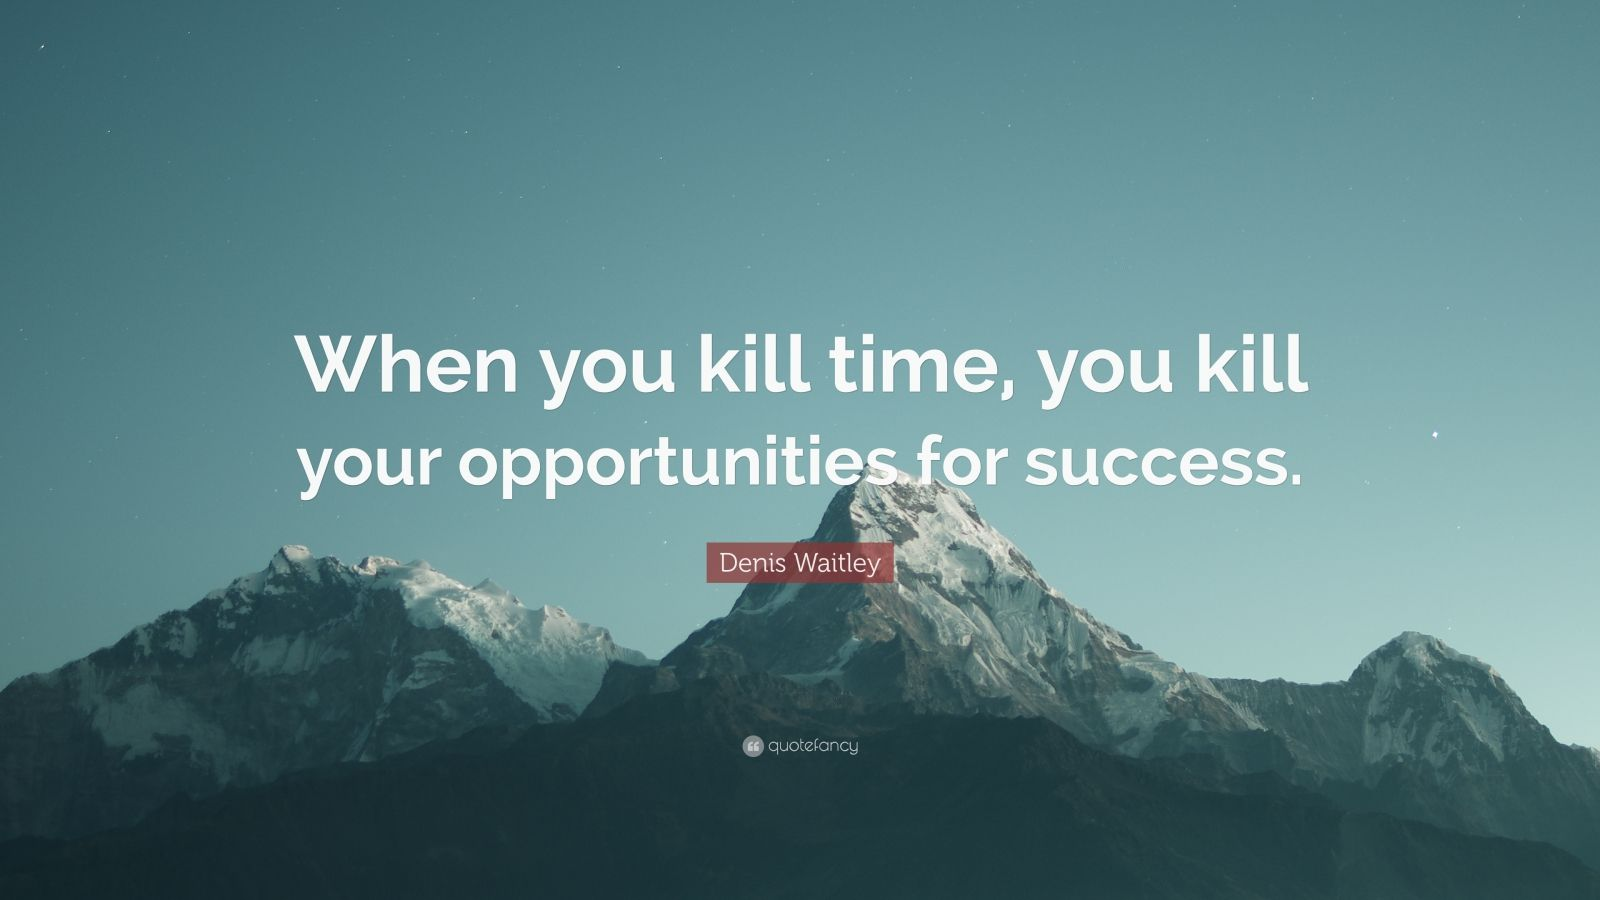 """Denis Waitley Quote: """"When you kill time, you kill your opportunities for success."""""""